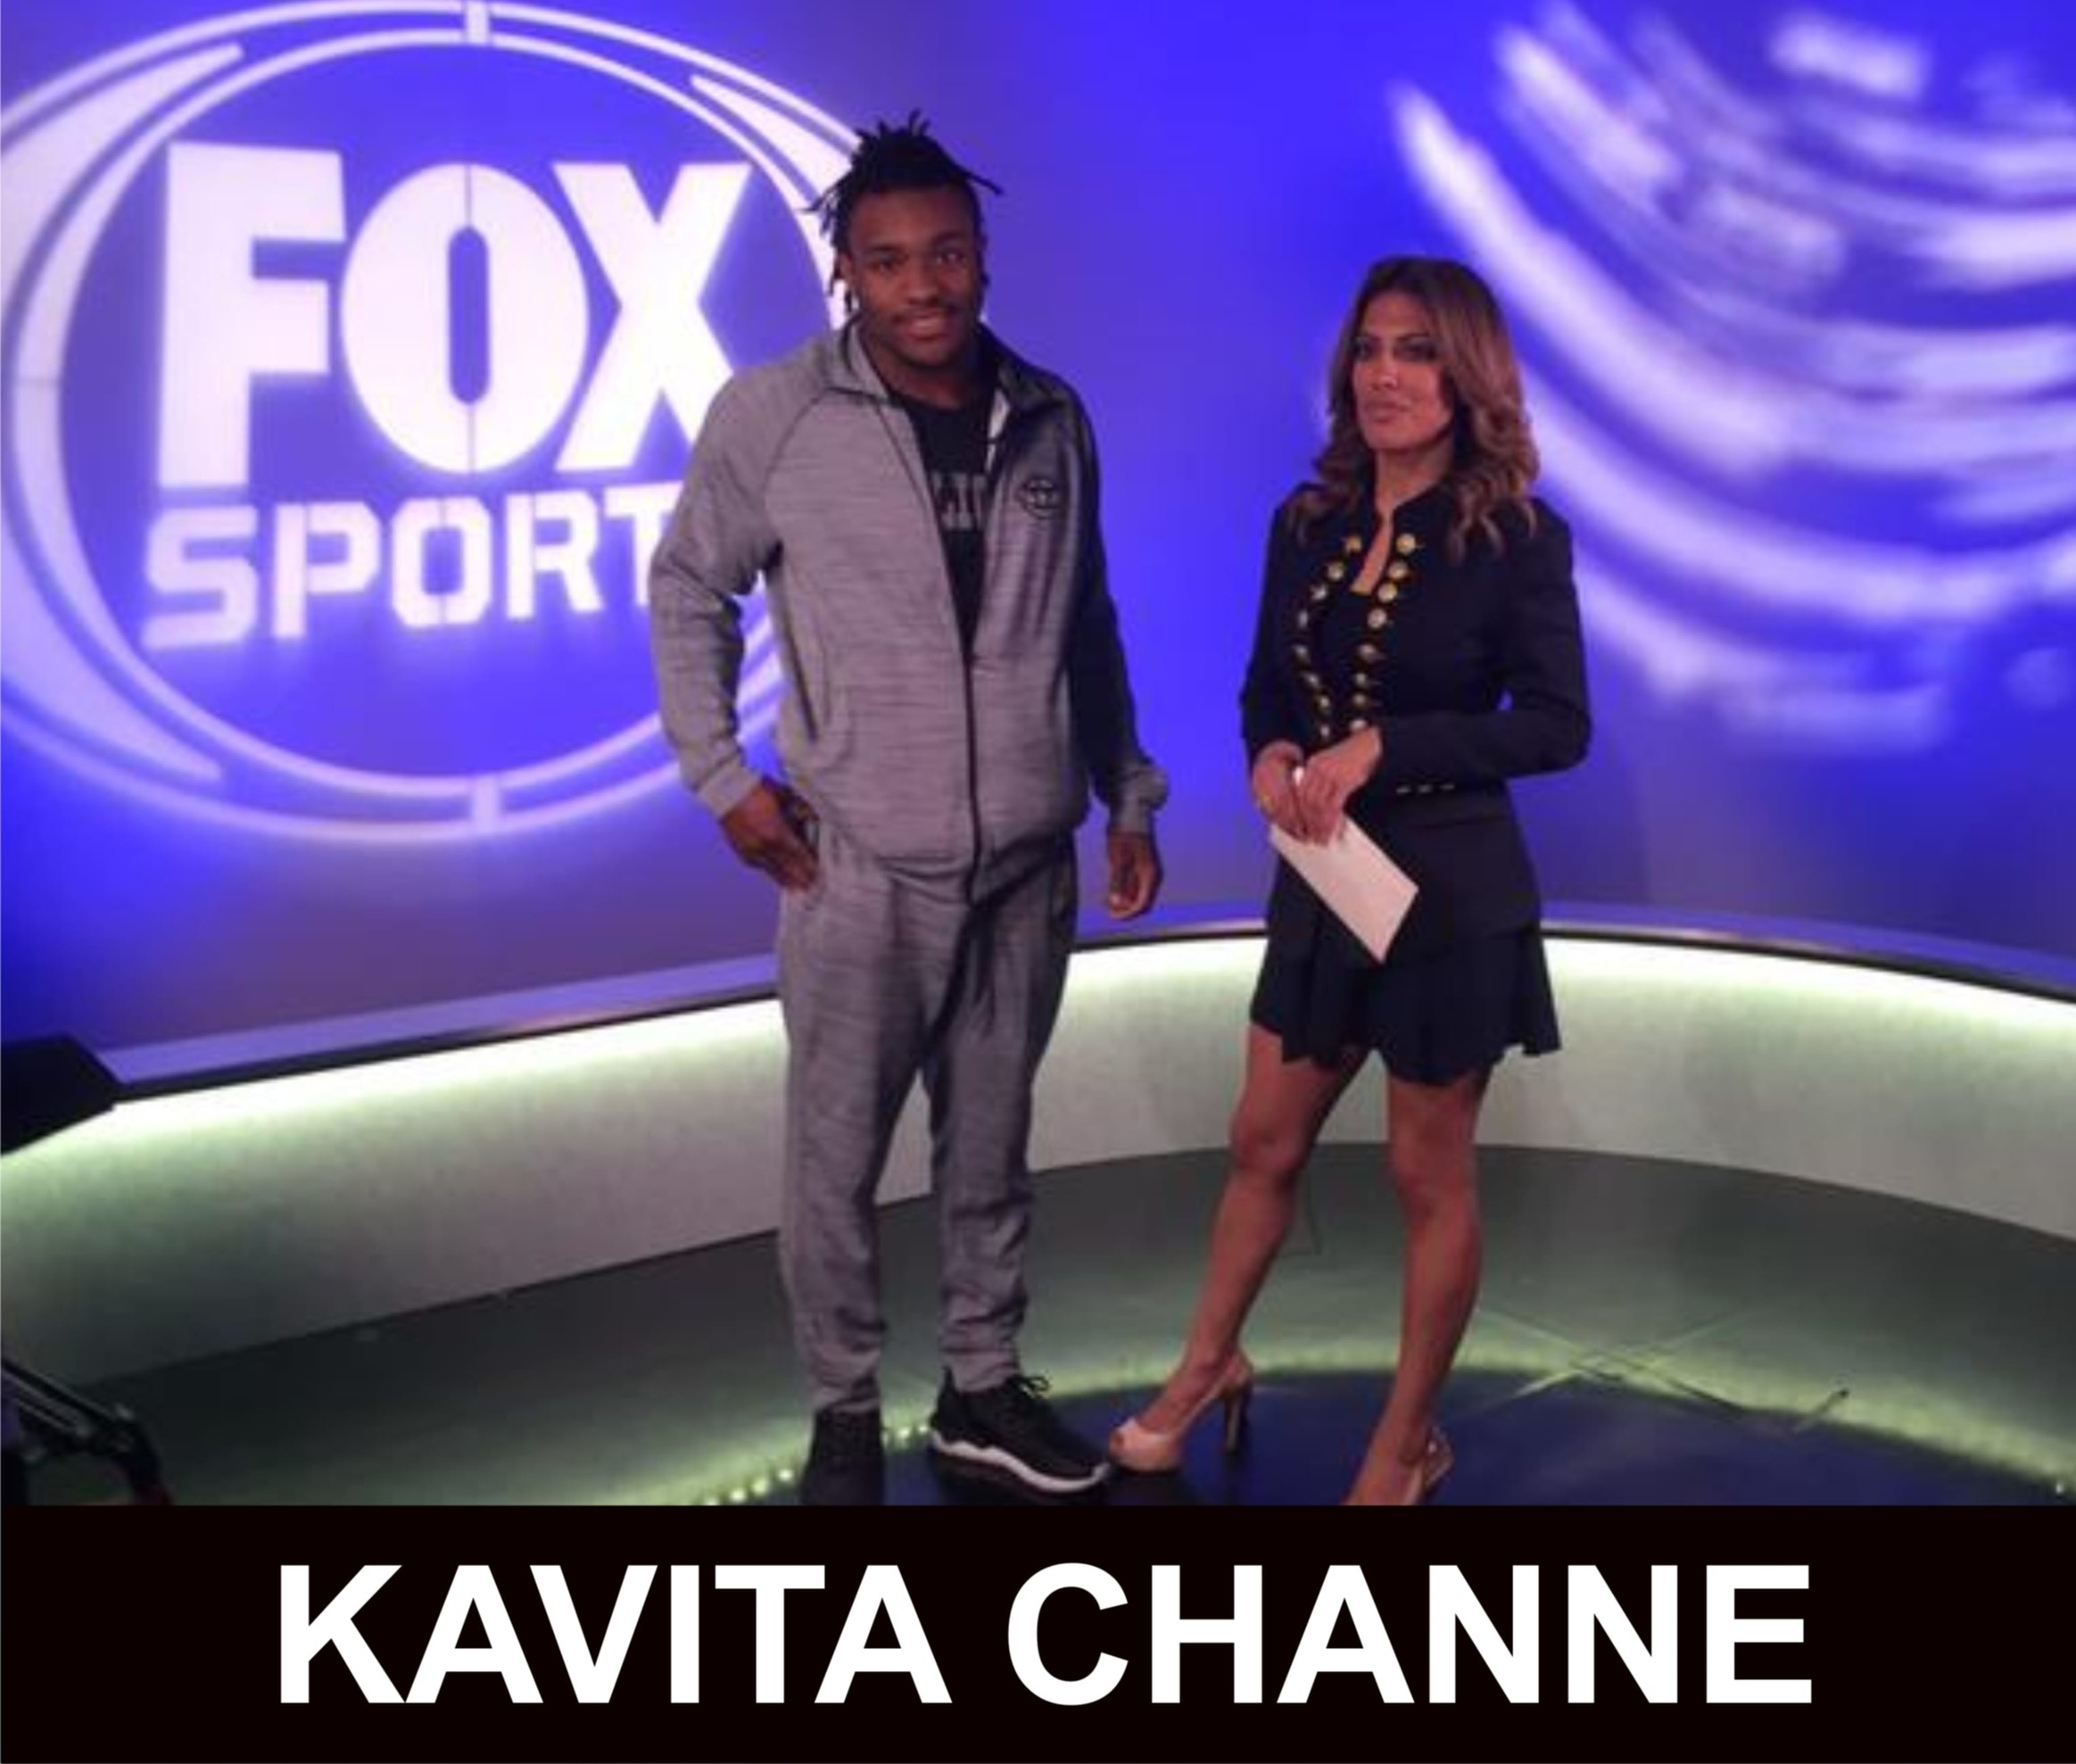 KAVITA CHANNE - US FOX SPORTS- , VIP TV- AND THE CHAT PRESENTER